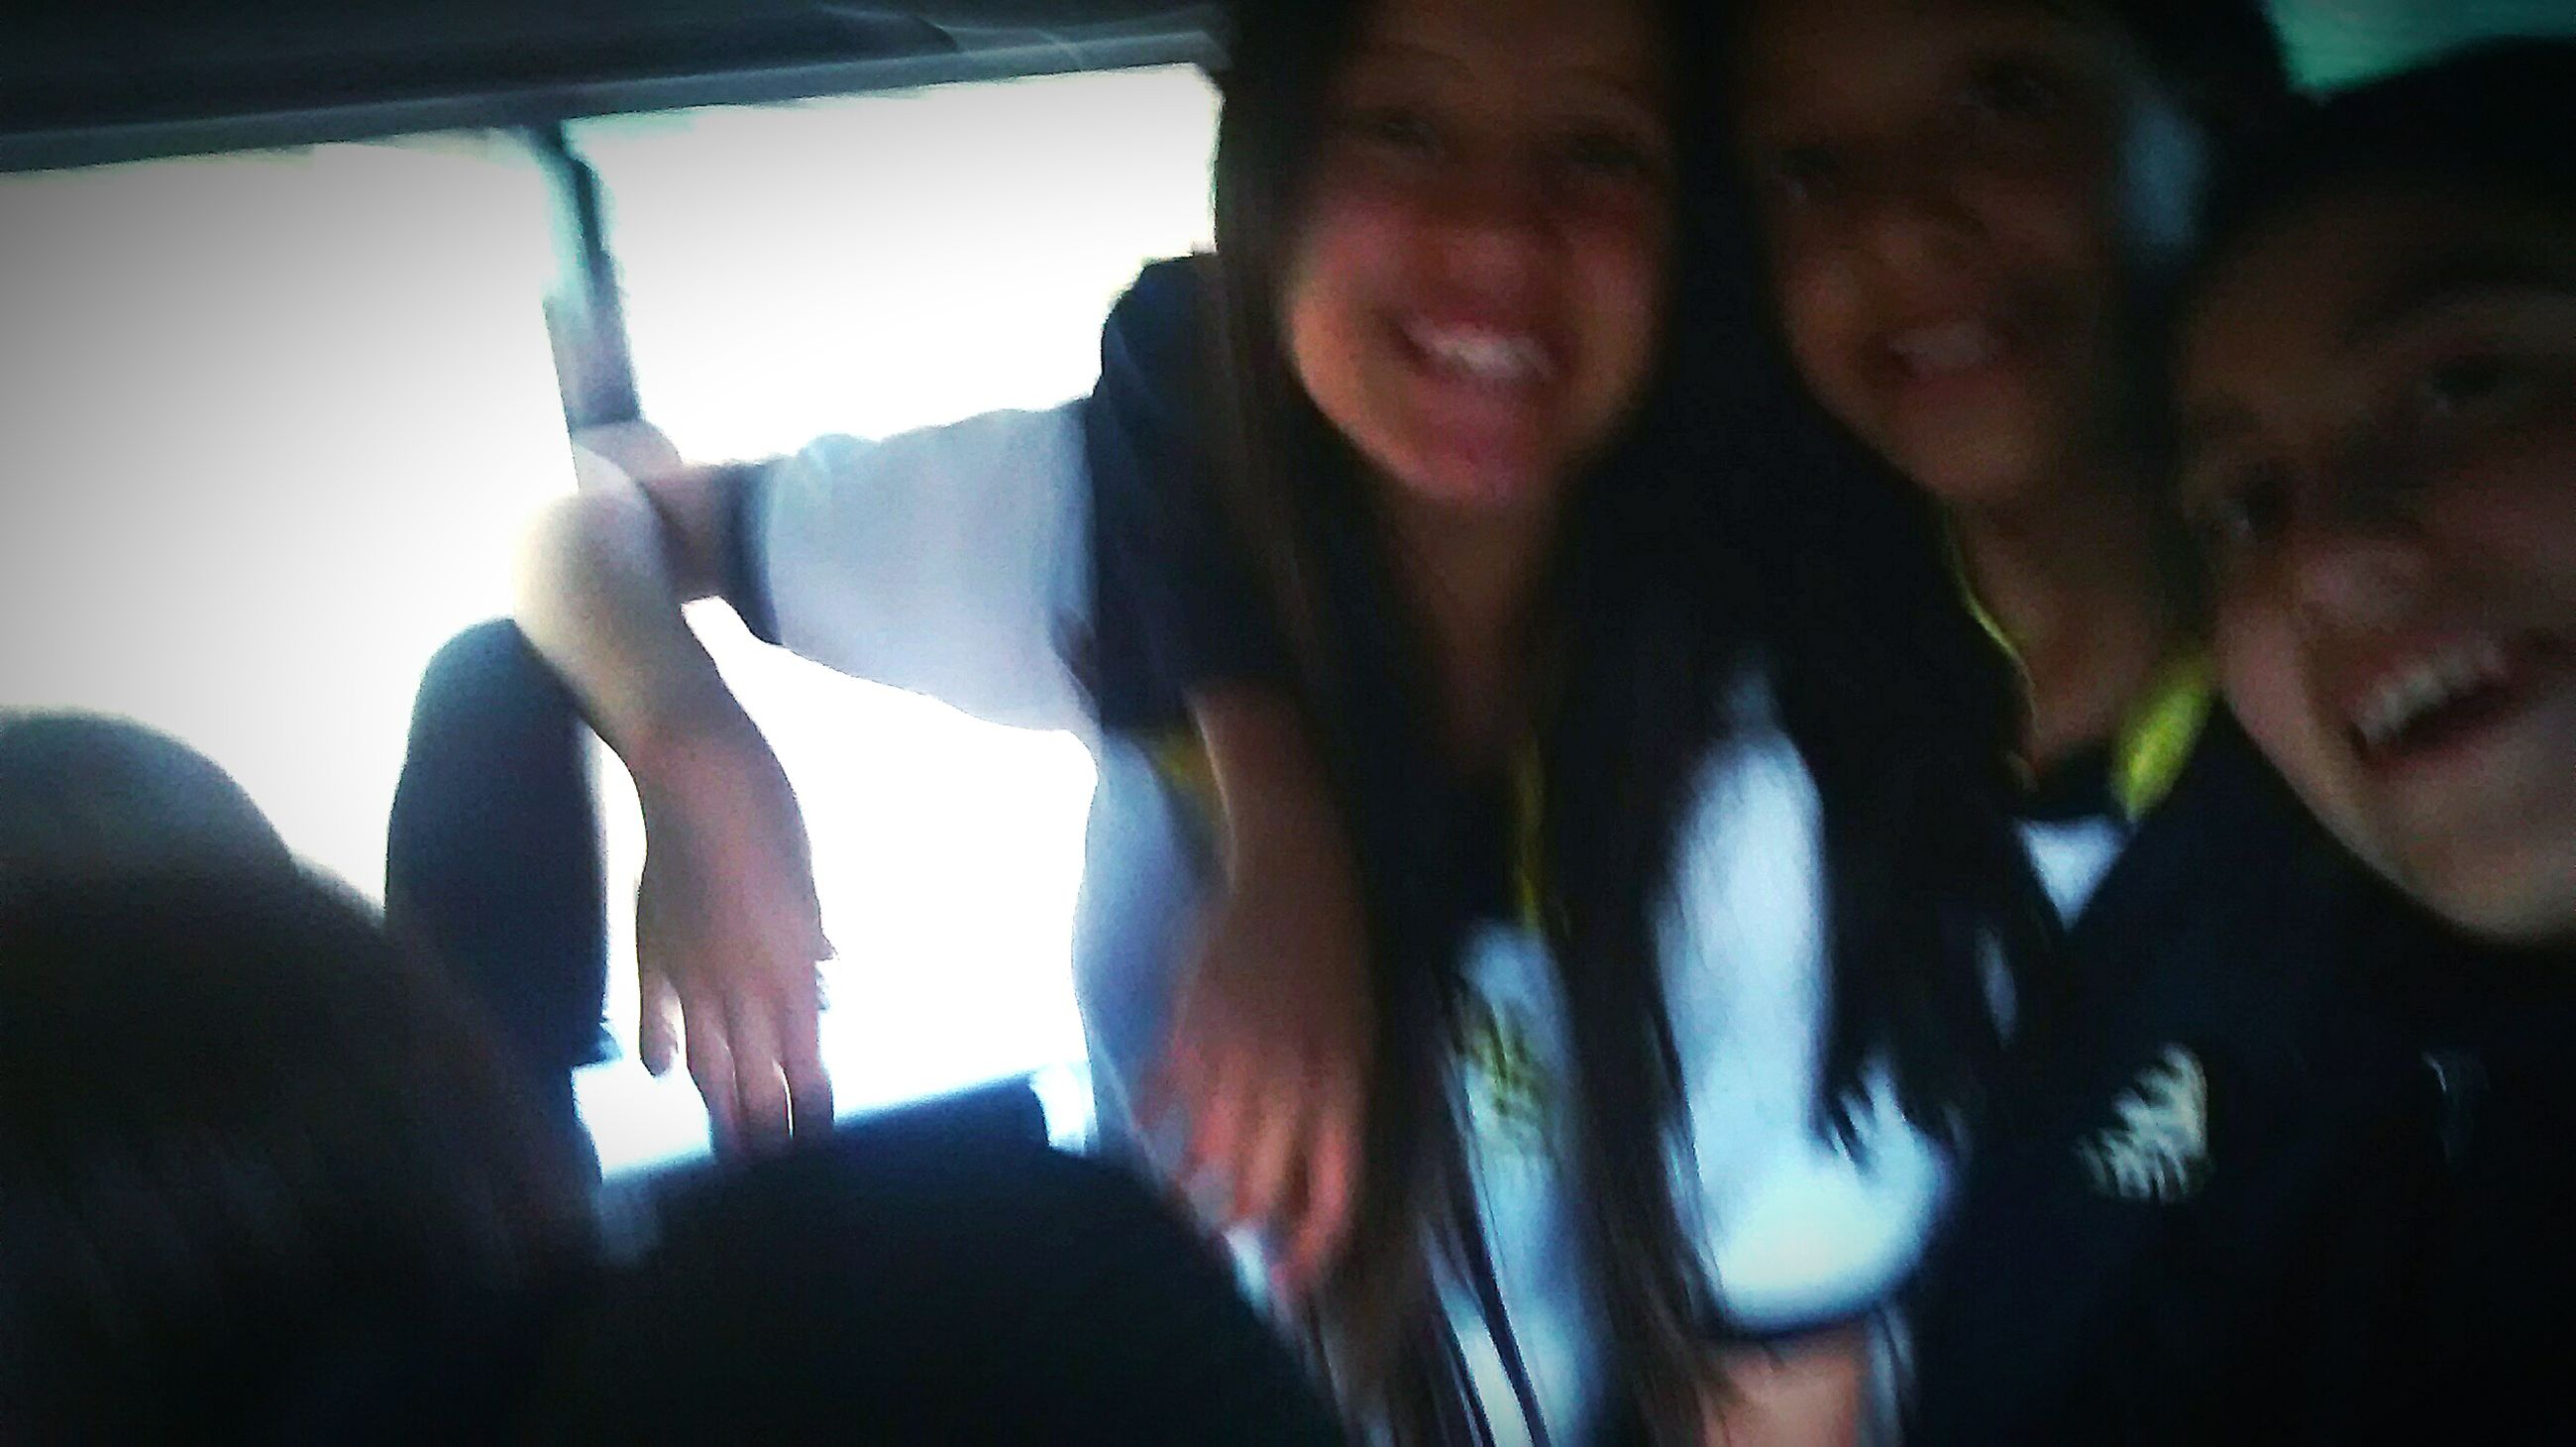 indoors, lifestyles, headshot, leisure activity, young adult, window, young women, person, vehicle interior, head and shoulders, close-up, men, home interior, glass - material, contemplation, auto post production filter